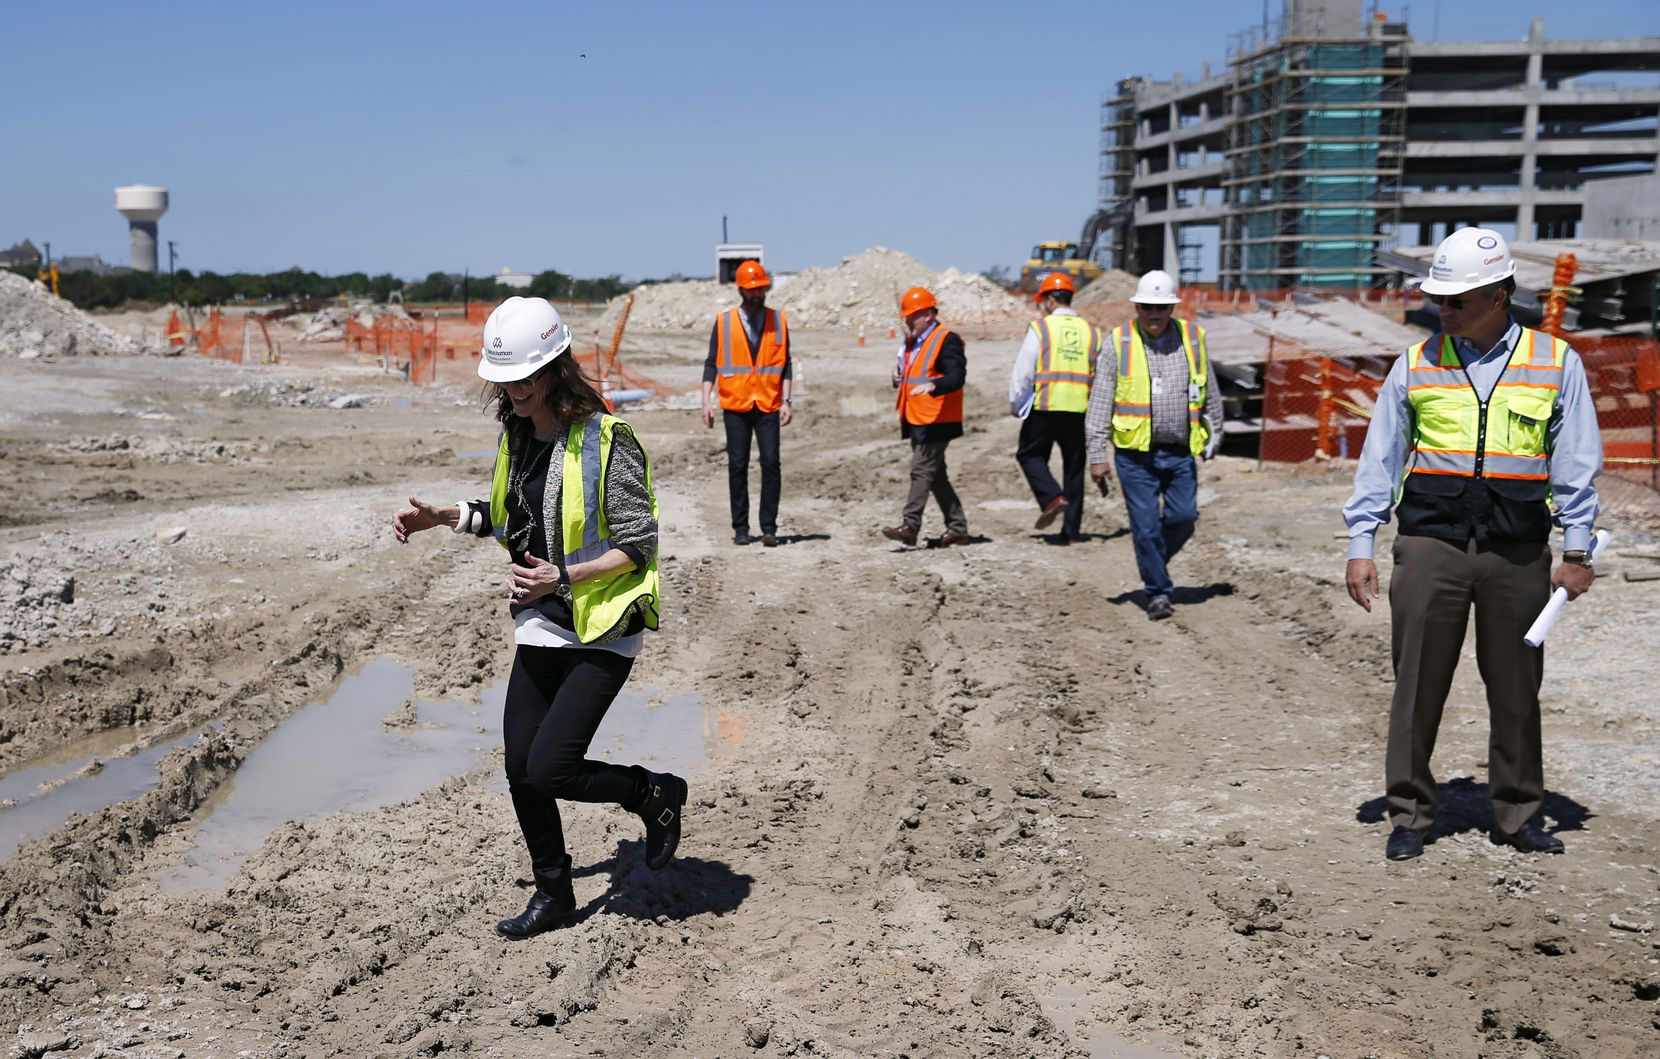 Charlotte Jones Anderson (center) Executive Vice President and Chief Brand Officer for the Dallas Cowboys makes her way around a muddy area as Senior Director Jennifer Surgalski, Corporate Partnership Services Dallas Cowboys and Project Manager, Mark Hickman of Legends watch during a tour of signs for use at the Dallas Cowboys new headquarters at The Star in Frisco, on Tuesday, May 3, 2016. The Star a joint project with the City of Frisco is scheduled to open in August. (Vernon Bryant/The Dallas Morning News)